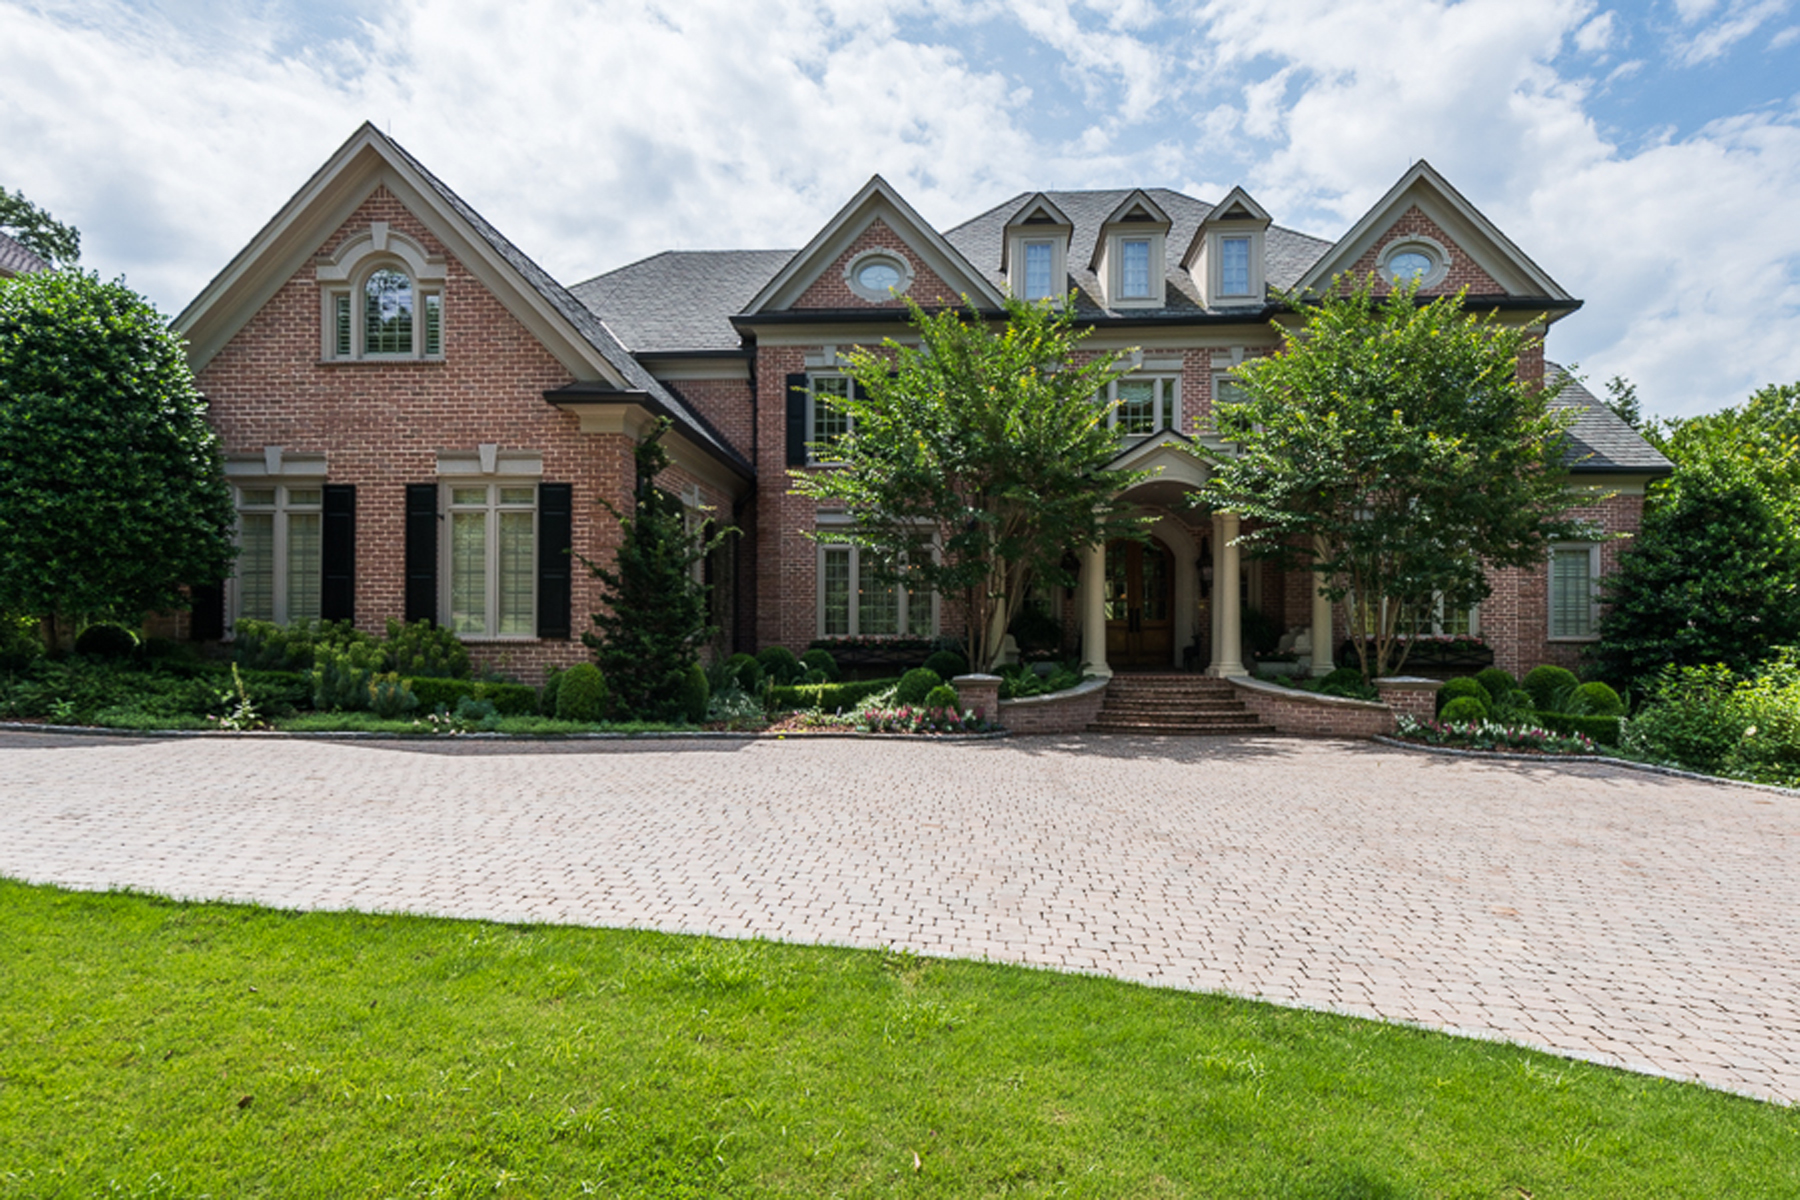 獨棟家庭住宅 為 出售 在 A Masterpiece In Johns Creek Most Prestigious Gated Golf Community 490 Covington Cove Alpharetta, 喬治亞州 30022 美國